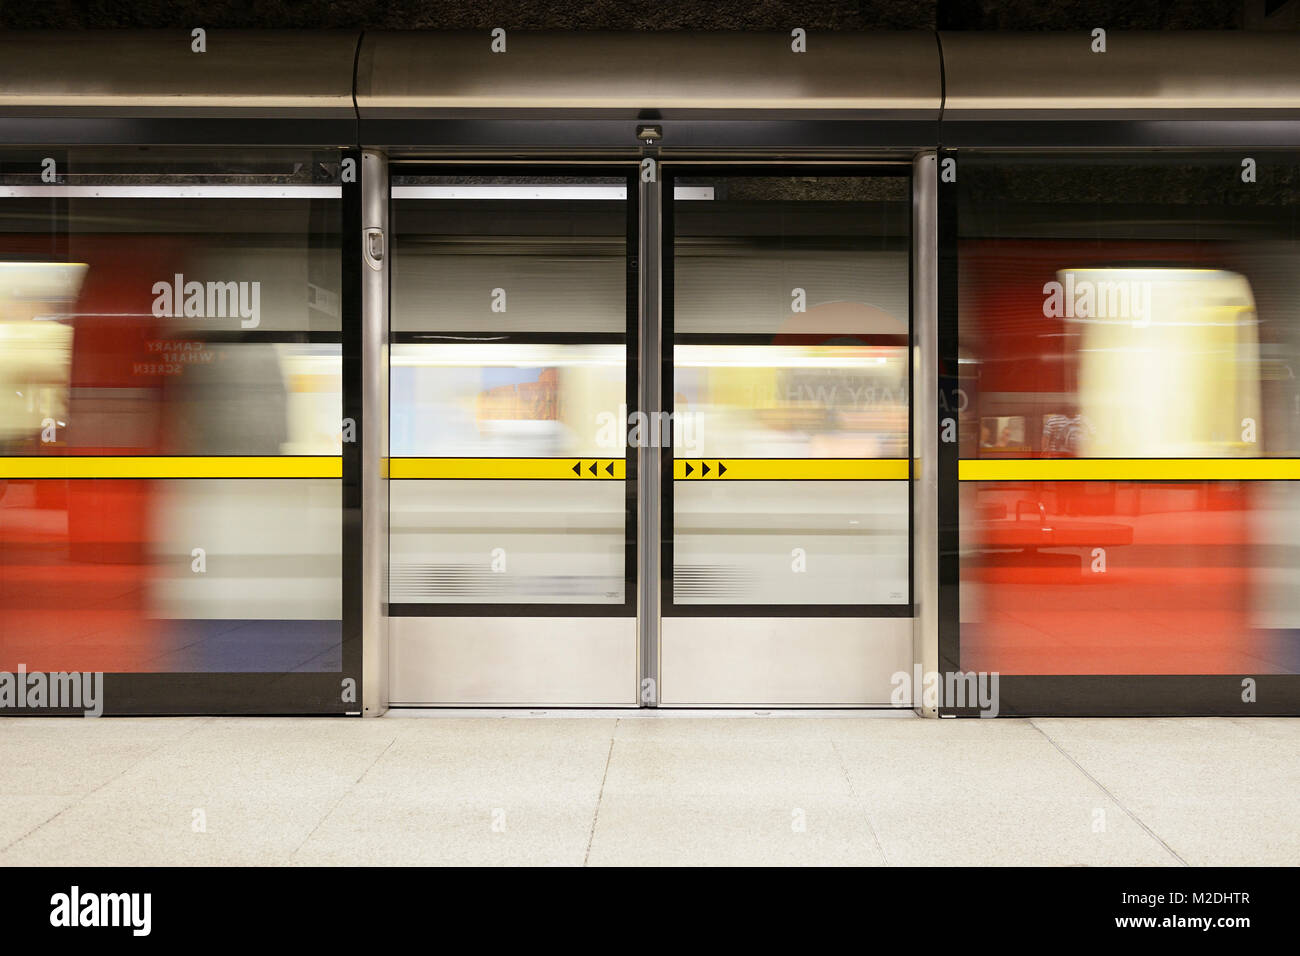 Platform Screen Doors on the London Underground at Canary Wharf Station, London, UK - Stock Image